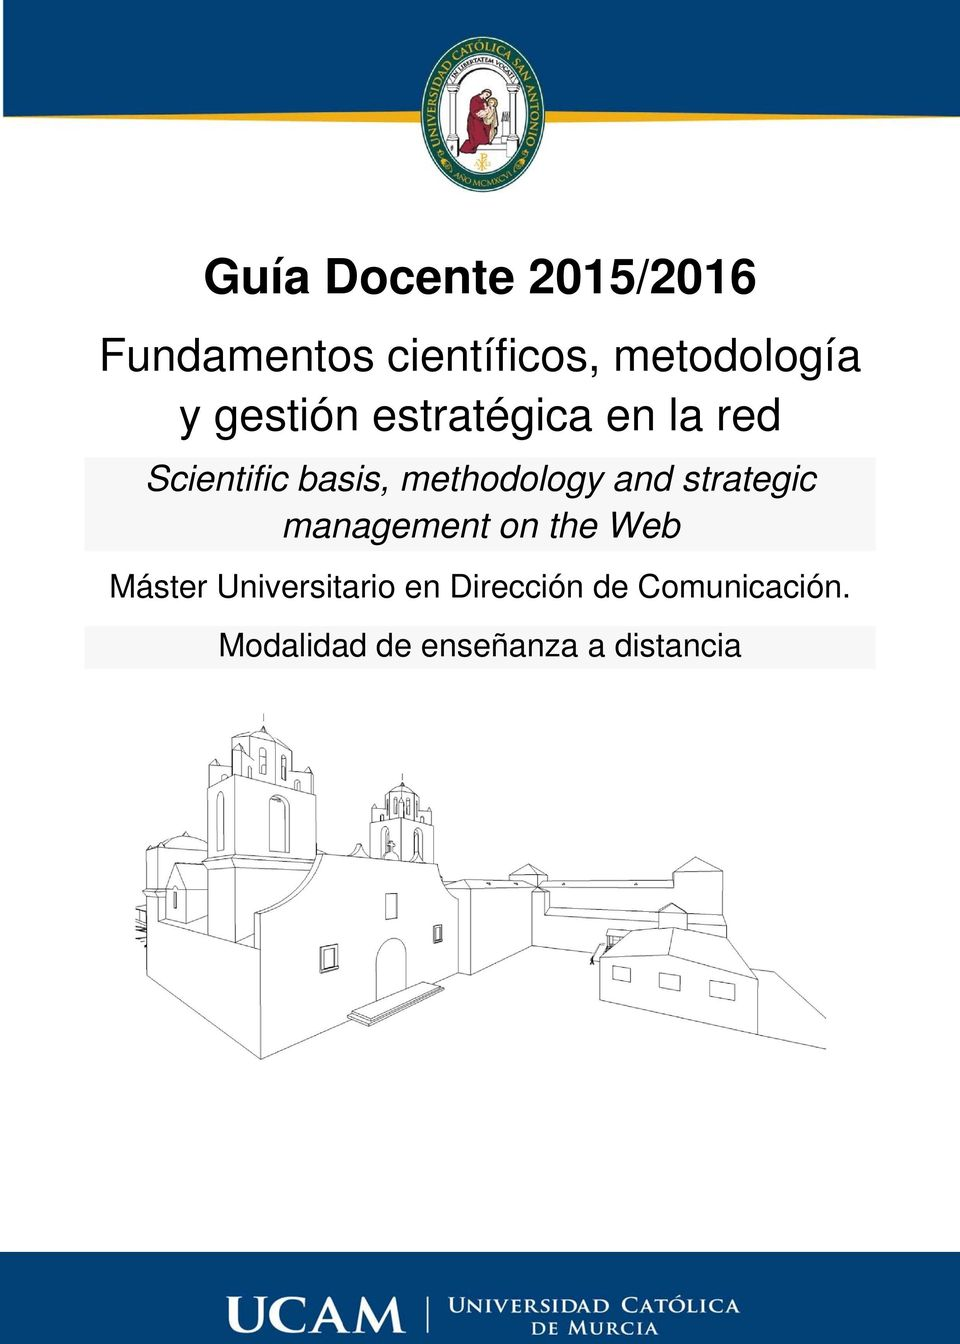 methodology and strategic management on the Web Máster